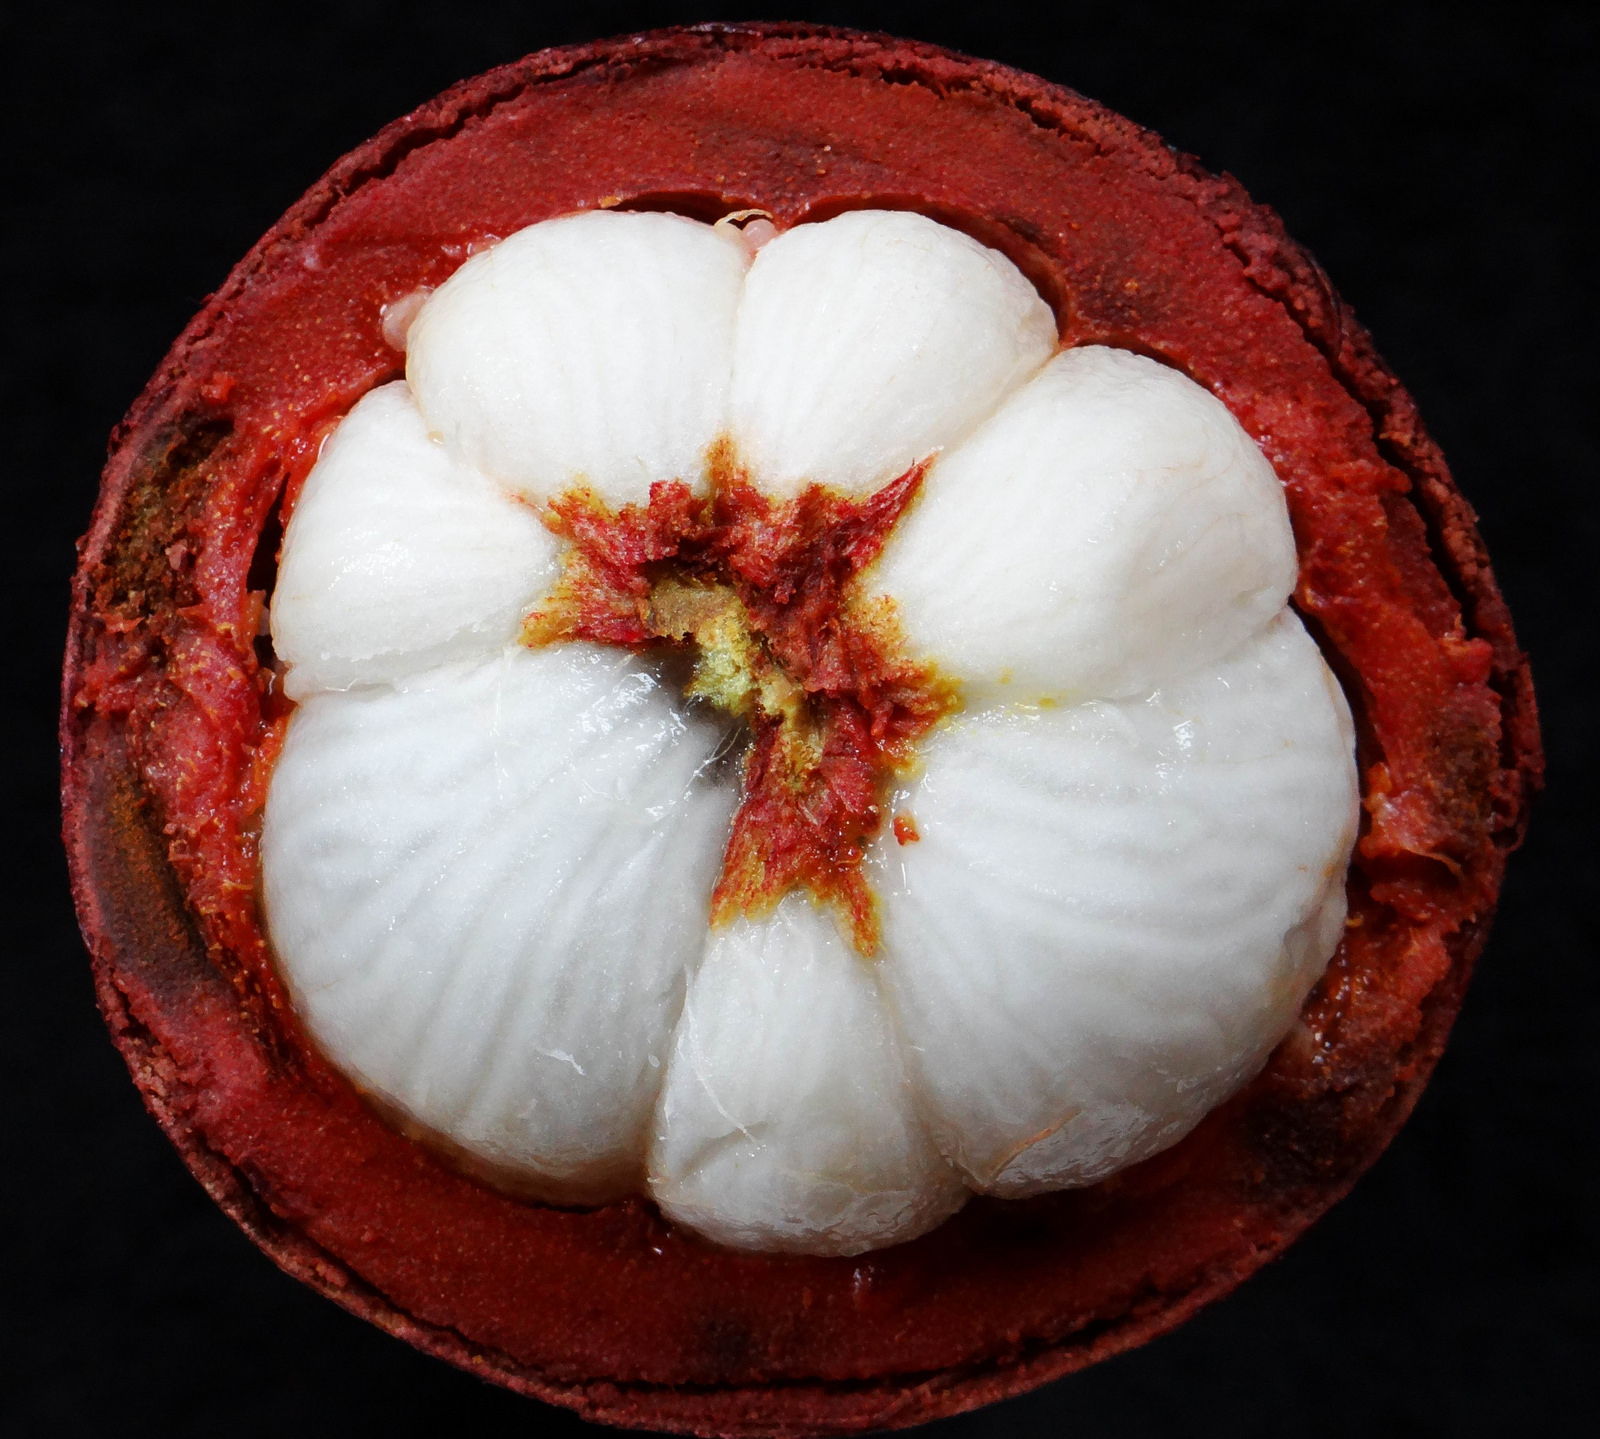 Interior of the fruit of Garcinia mangostana